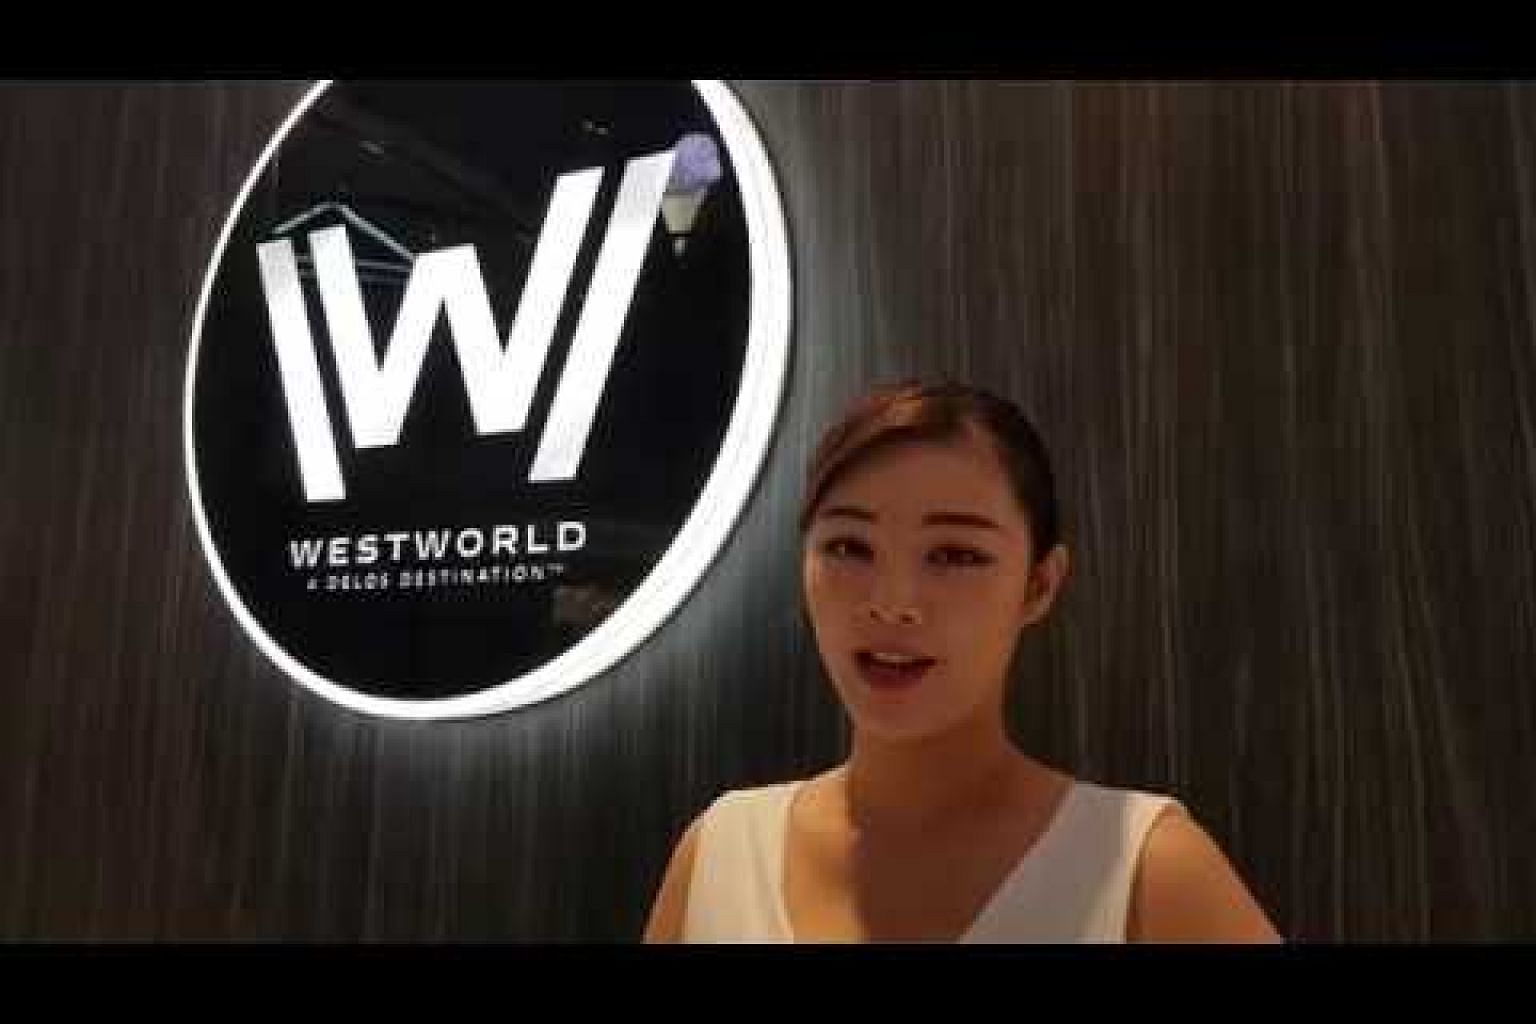 Westworld VR booth at Ion Orchard